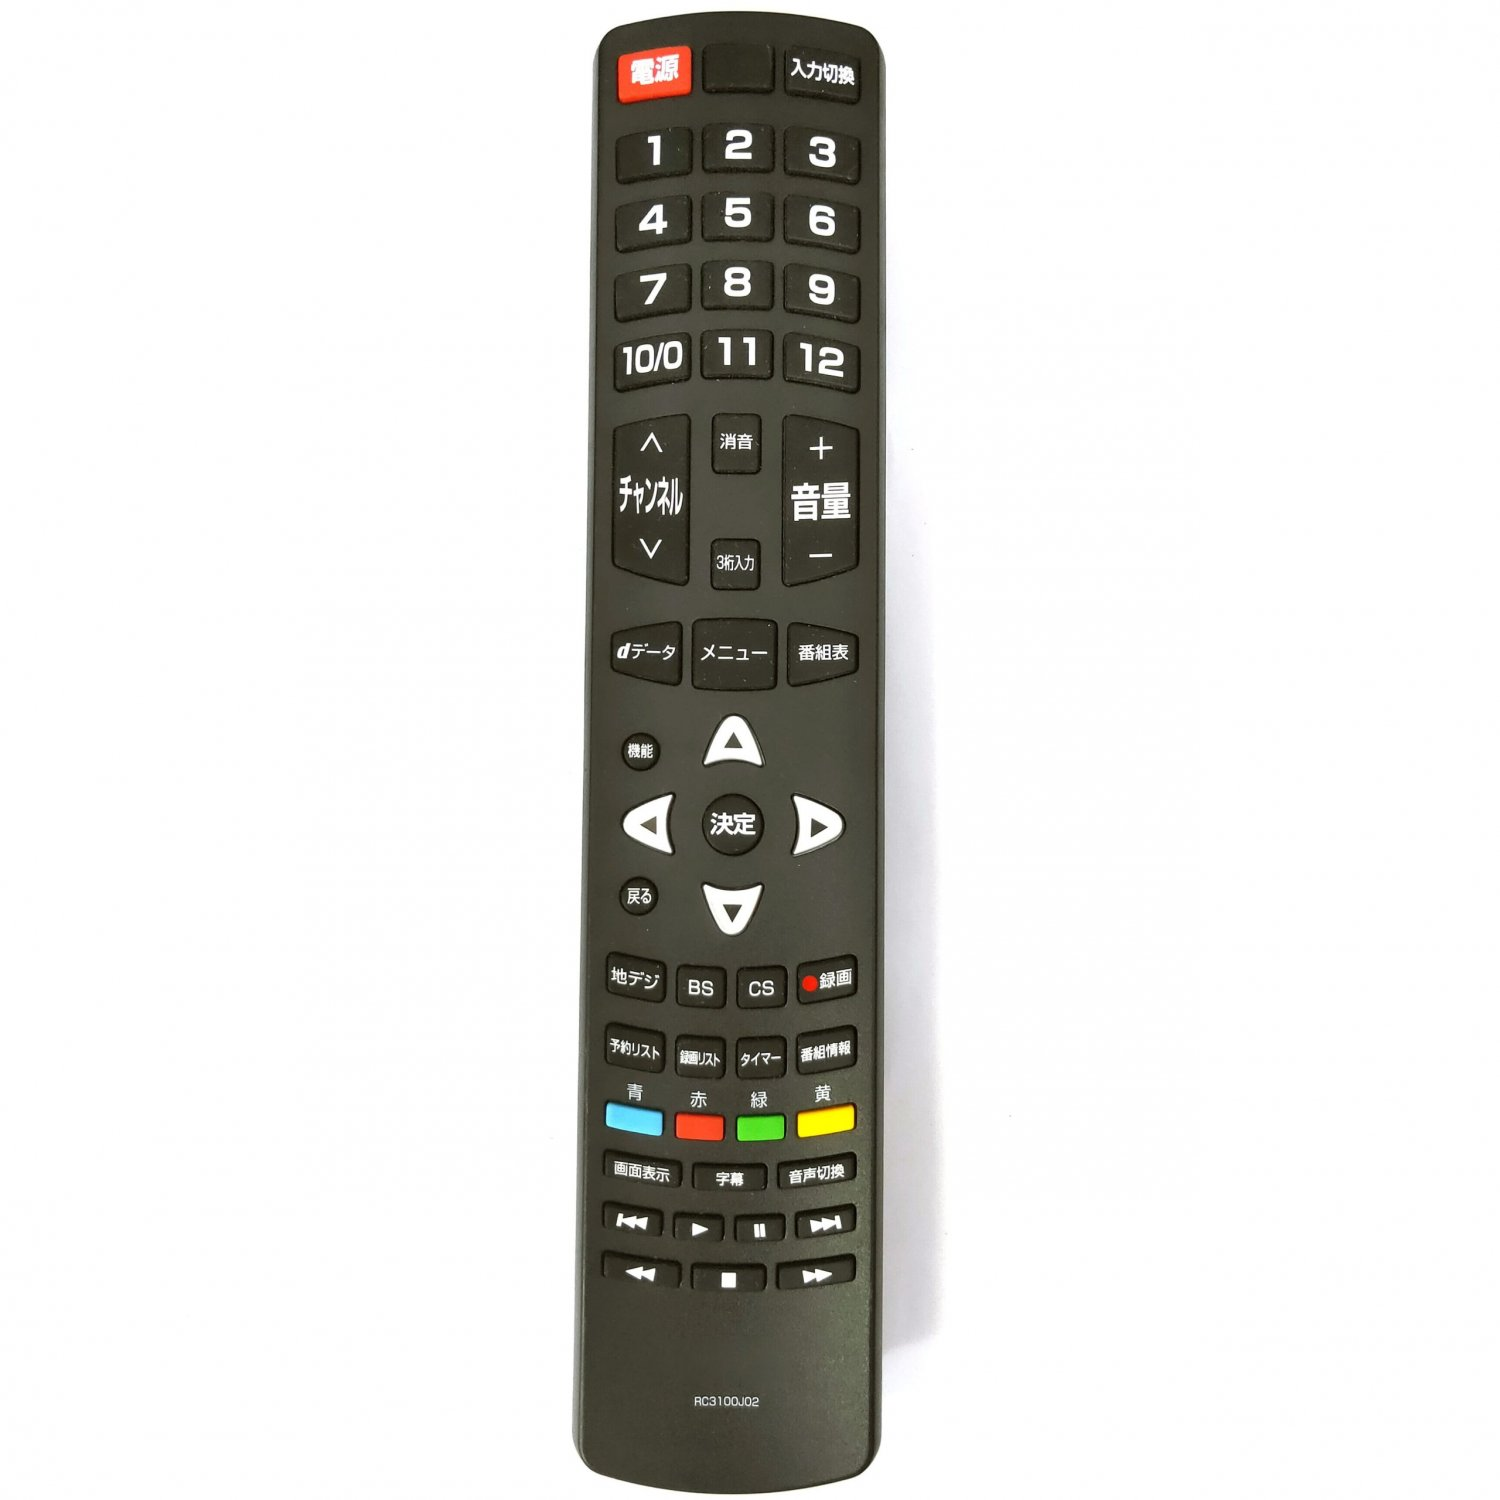 ORIGINAL RC3100J02 Remote Control For TCL TV Japanese